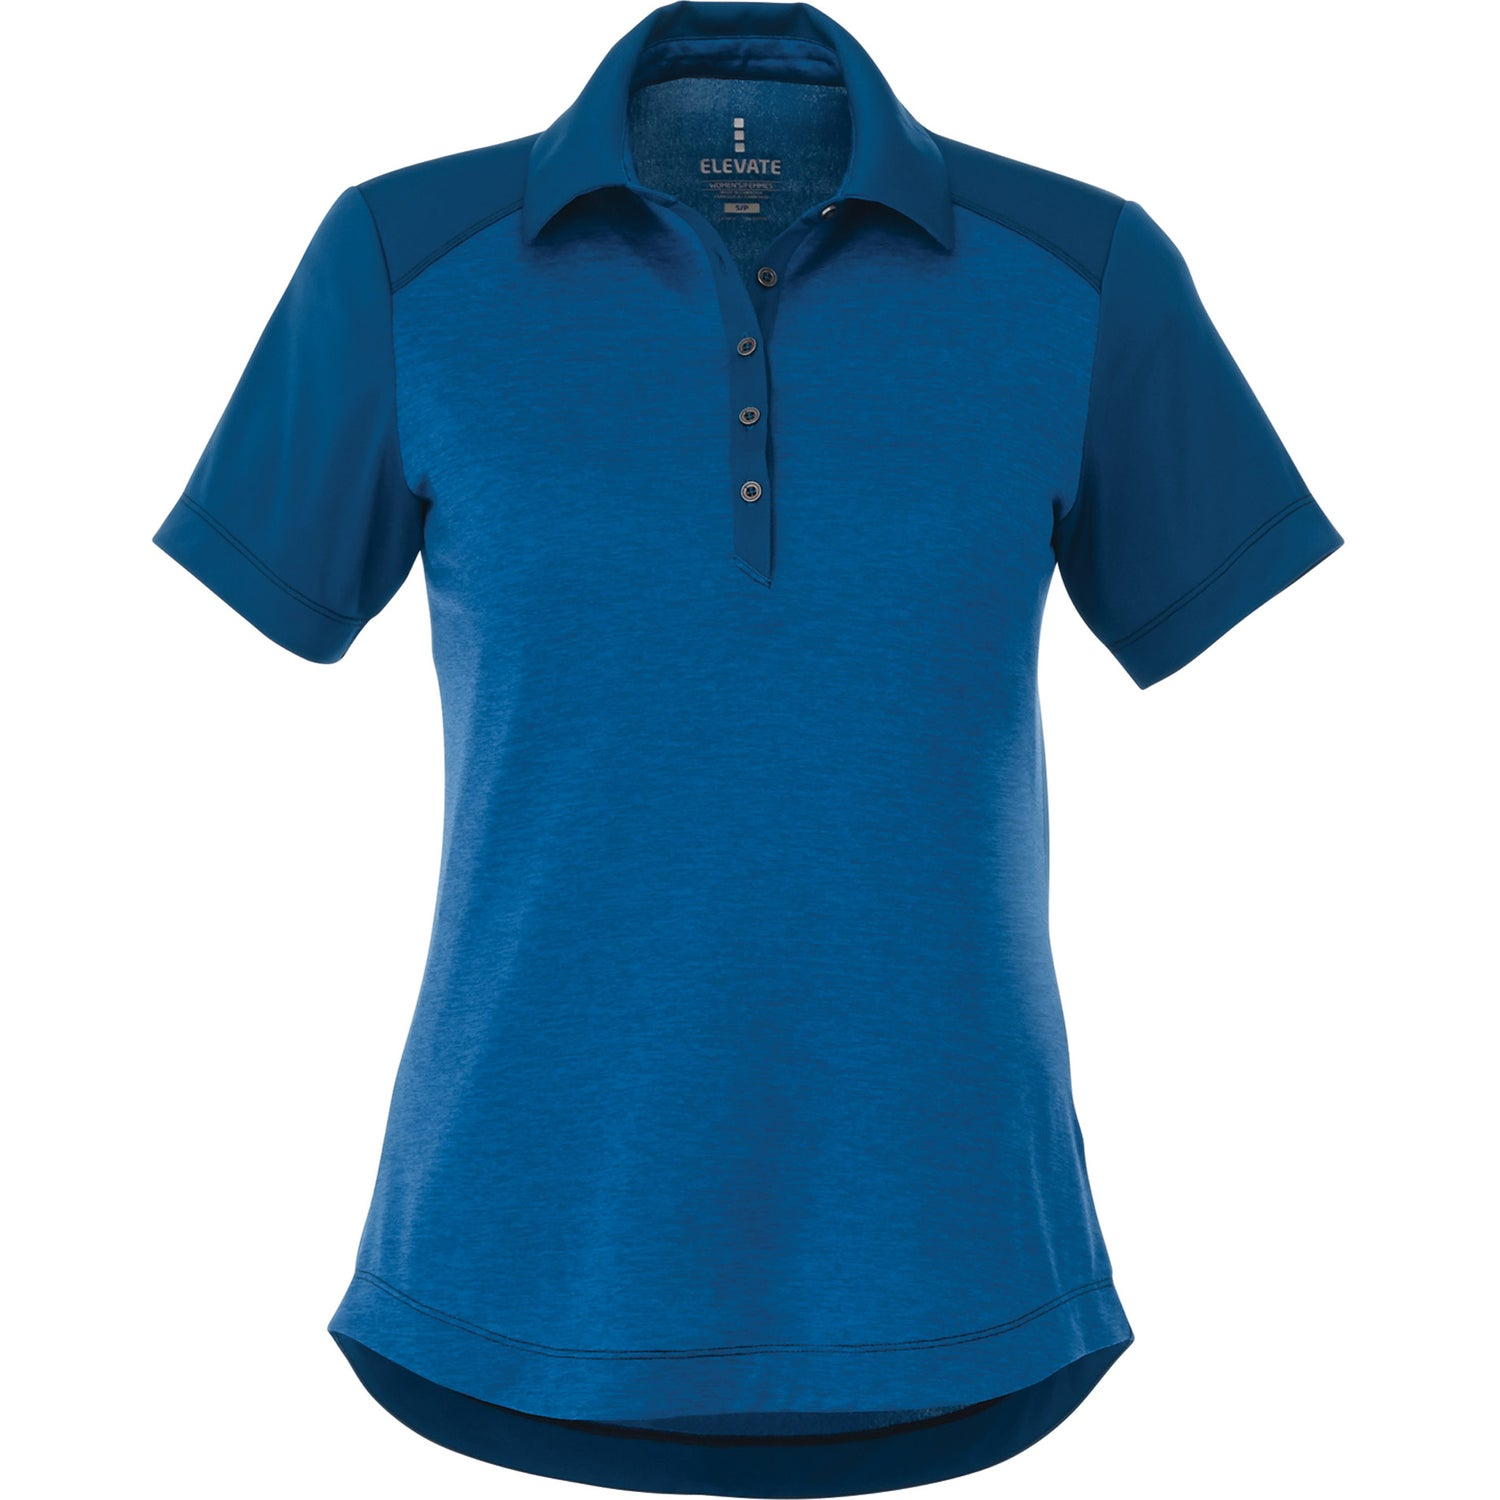 Promotional women 39 s sagano short sleeve polo shirt by for Custom embroidered polo shirts no minimum order